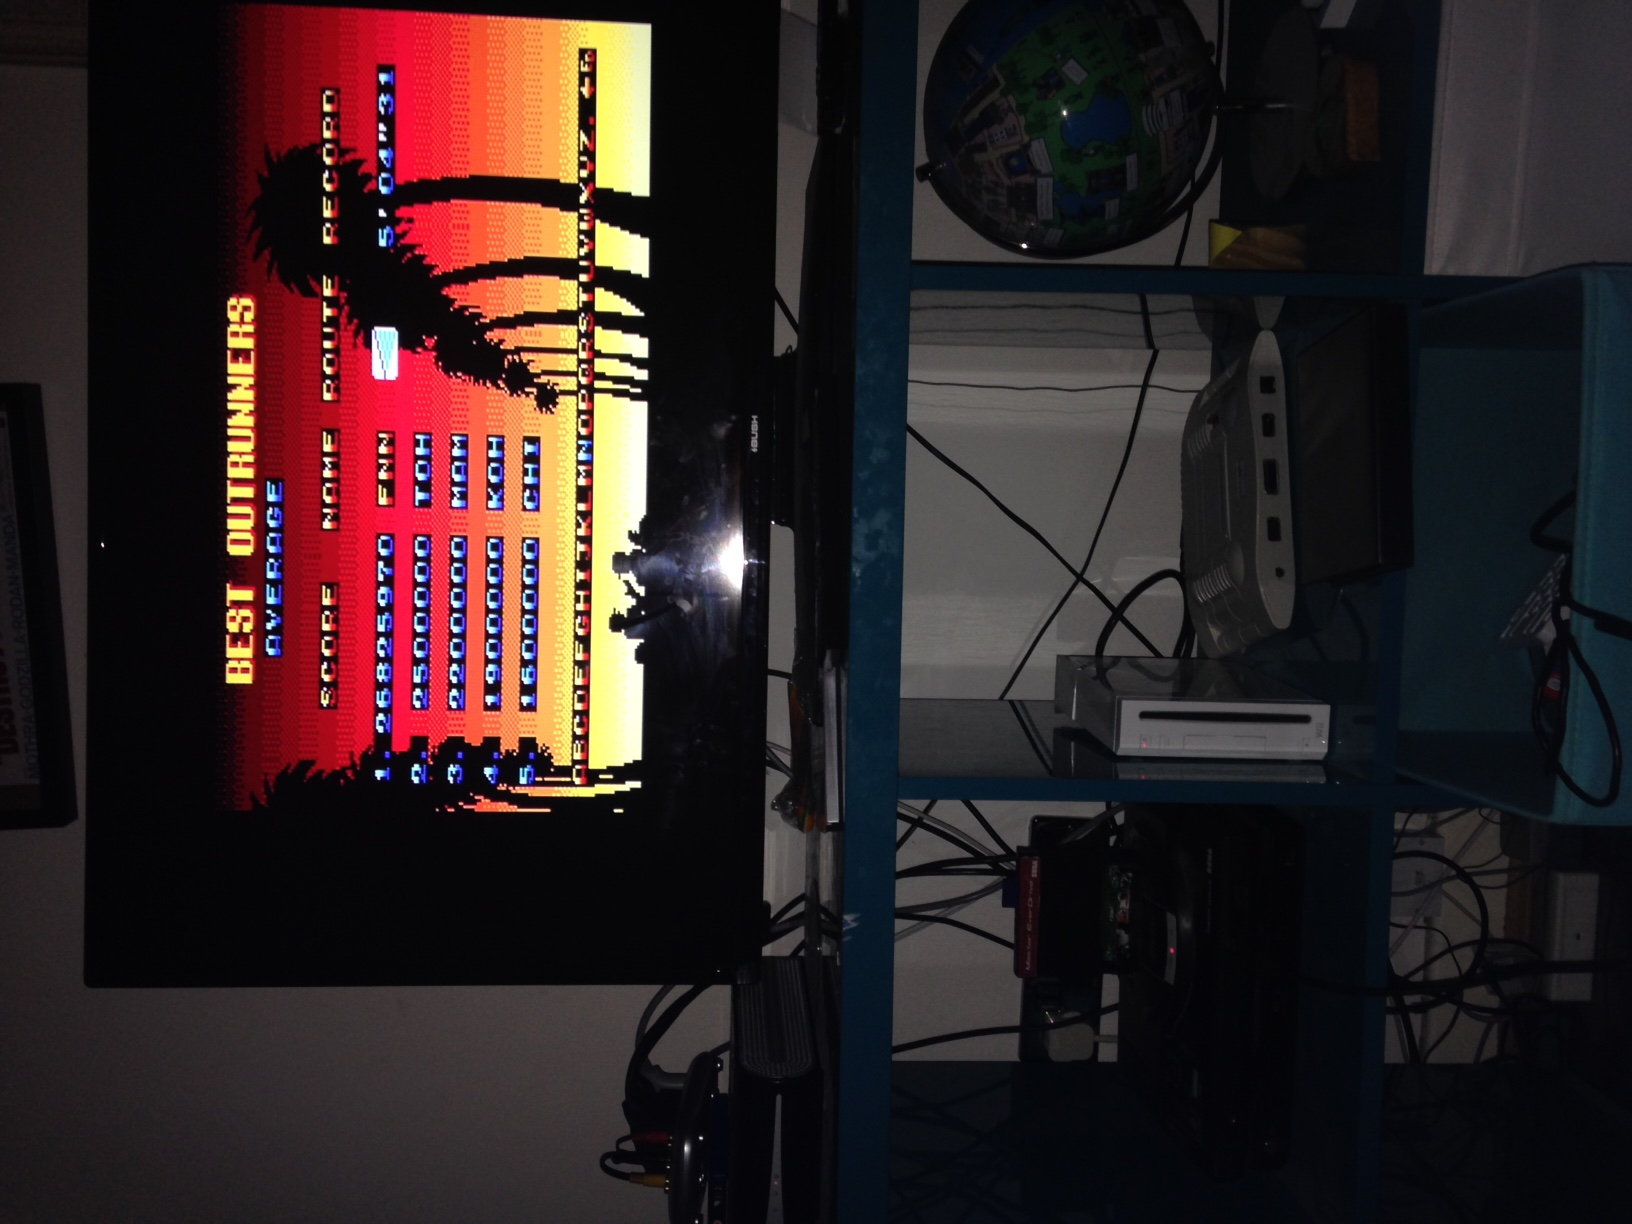 mechafatnick: Outrun 3D (Sega Master System) 26,825,970 points on 2016-01-14 01:15:14